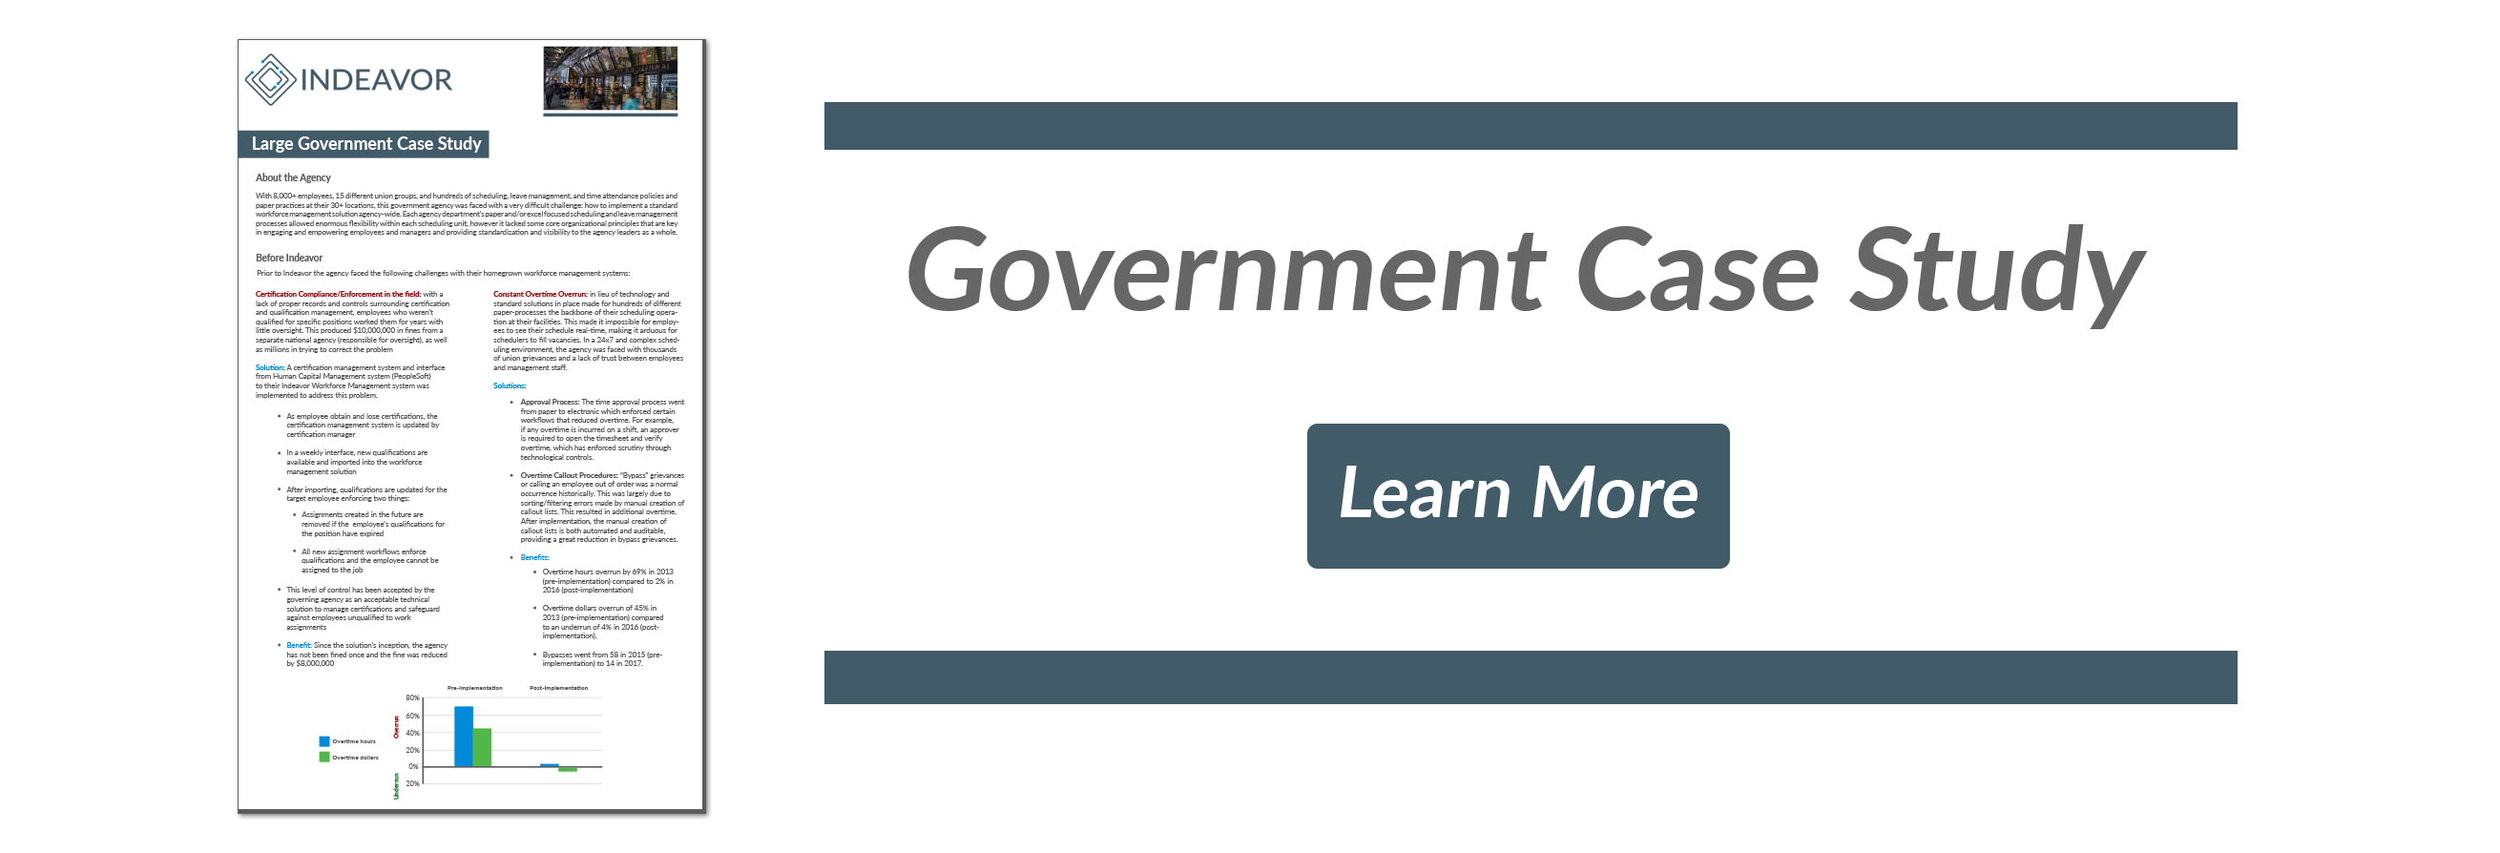 Government Case Study Blog Banner.jpg